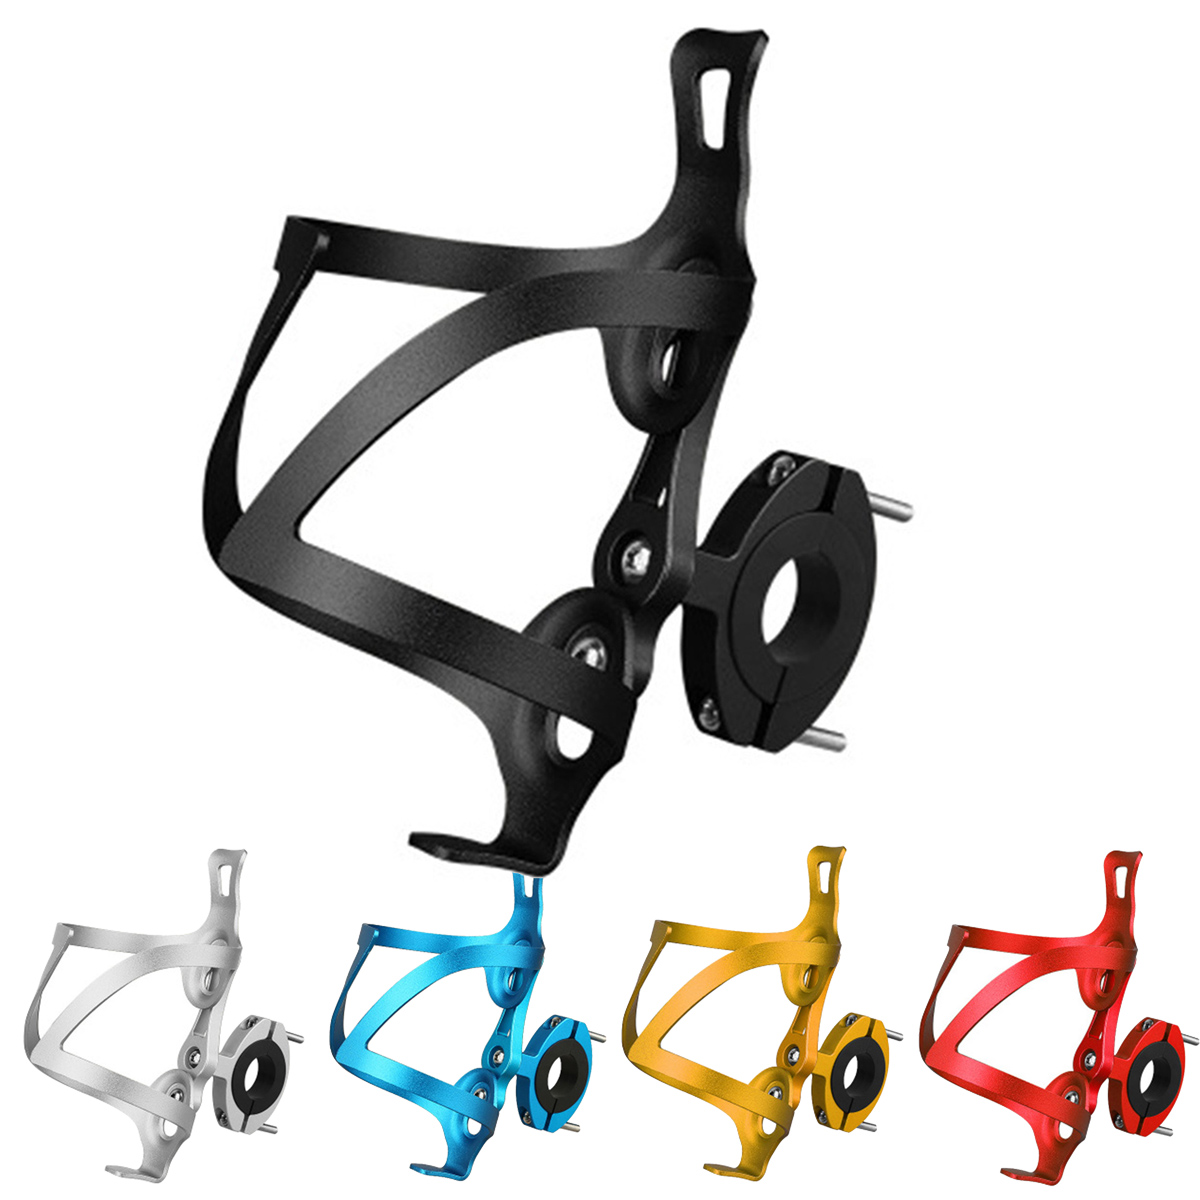 Practical Bike Water Bottle Holder Bracket Cage For Sport Bicycle Cycle Rack US